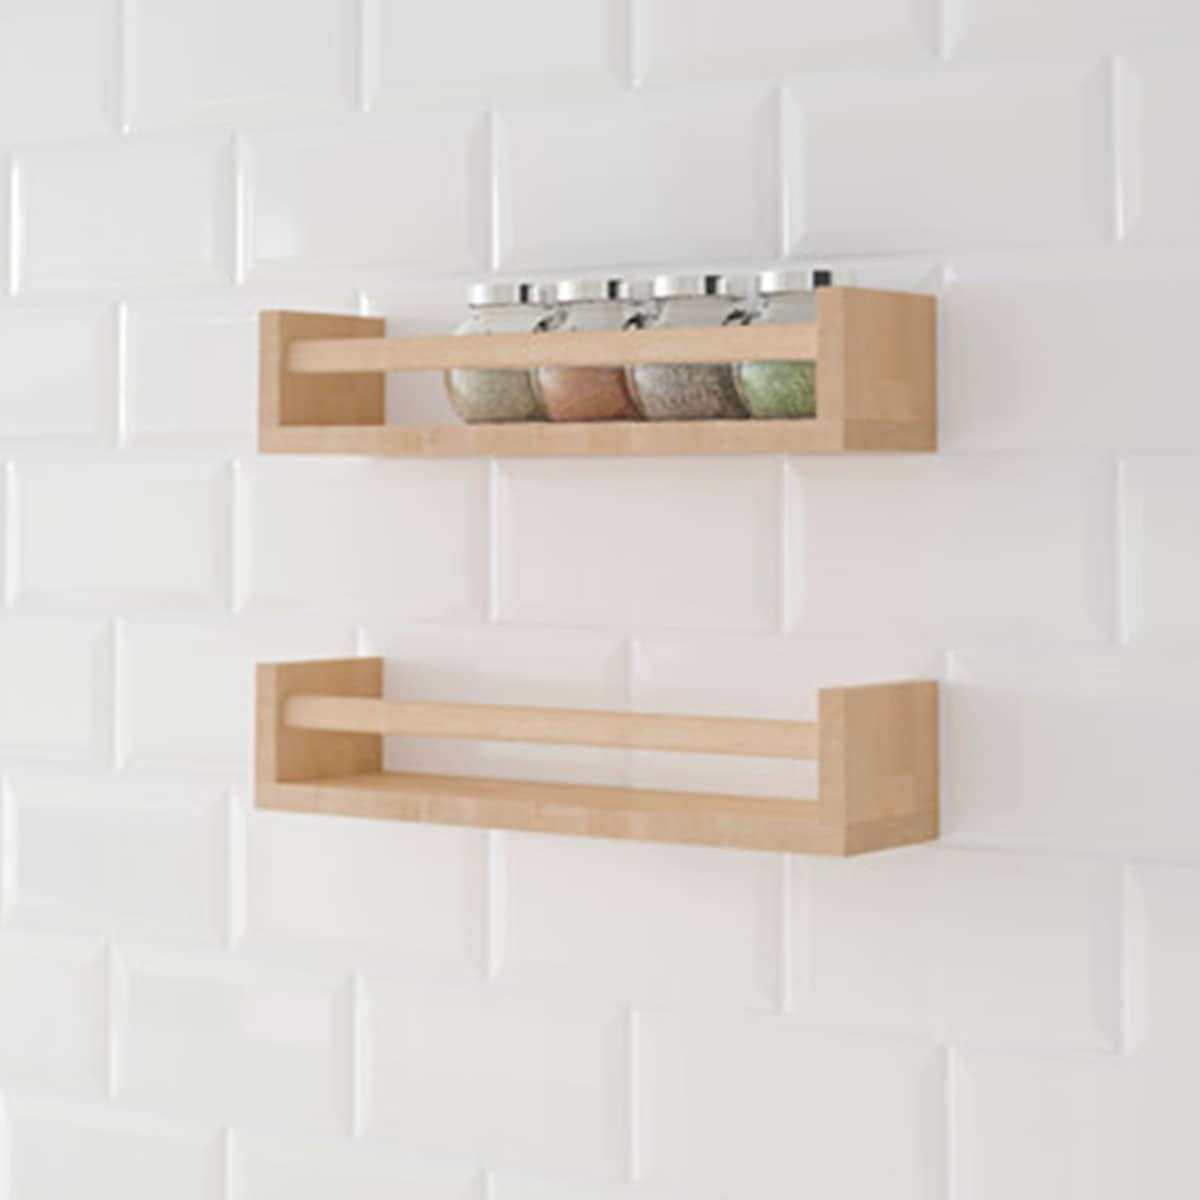 Beyond RASKOG: 8 Pantry-Organizing Products from IKEA For $10 or Less: gallery image 7